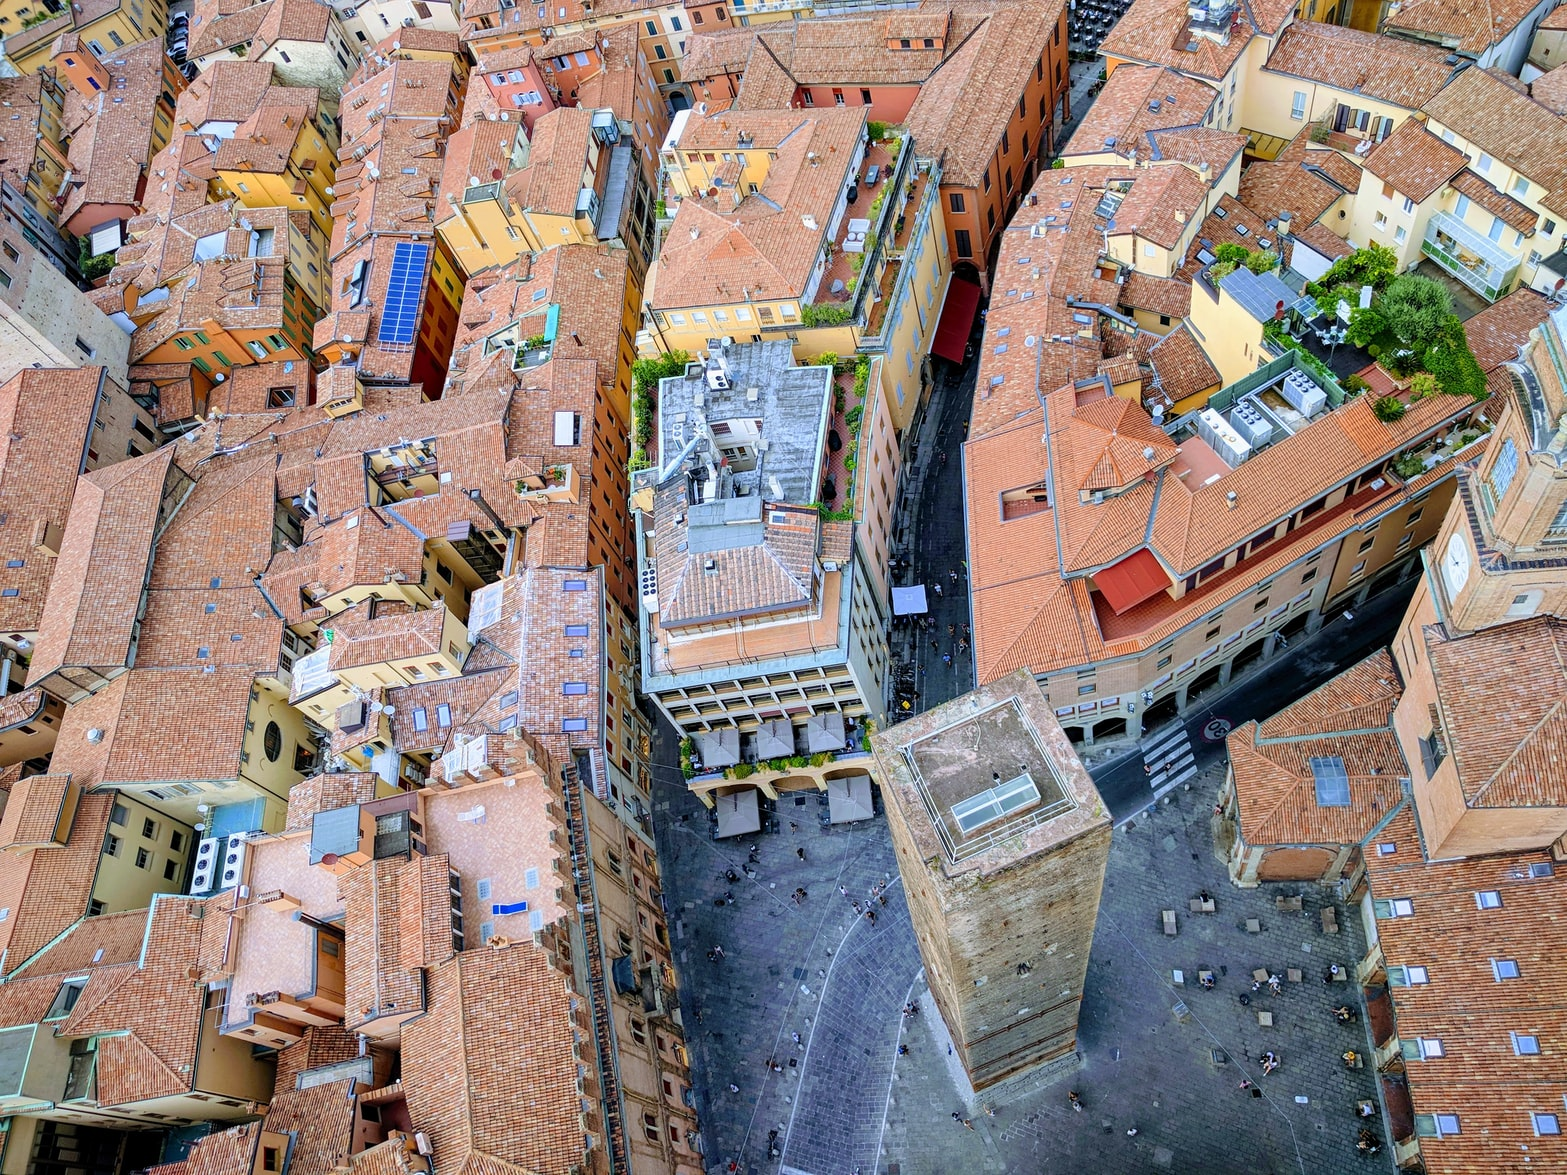 arial view of Bologna, Italy